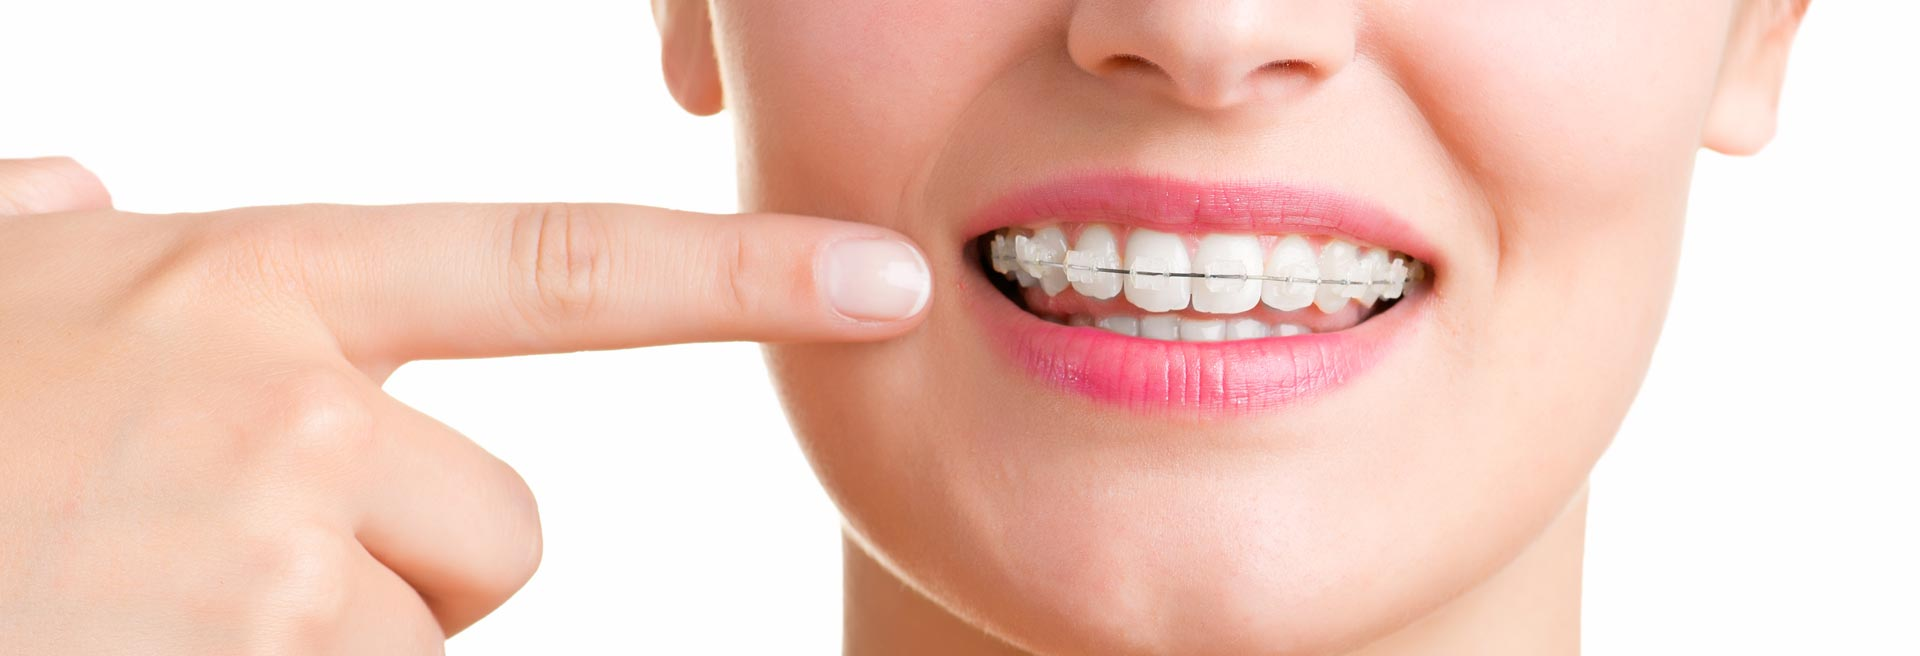 South Calgary Dental Braces | Shawnessy Smiles Dental